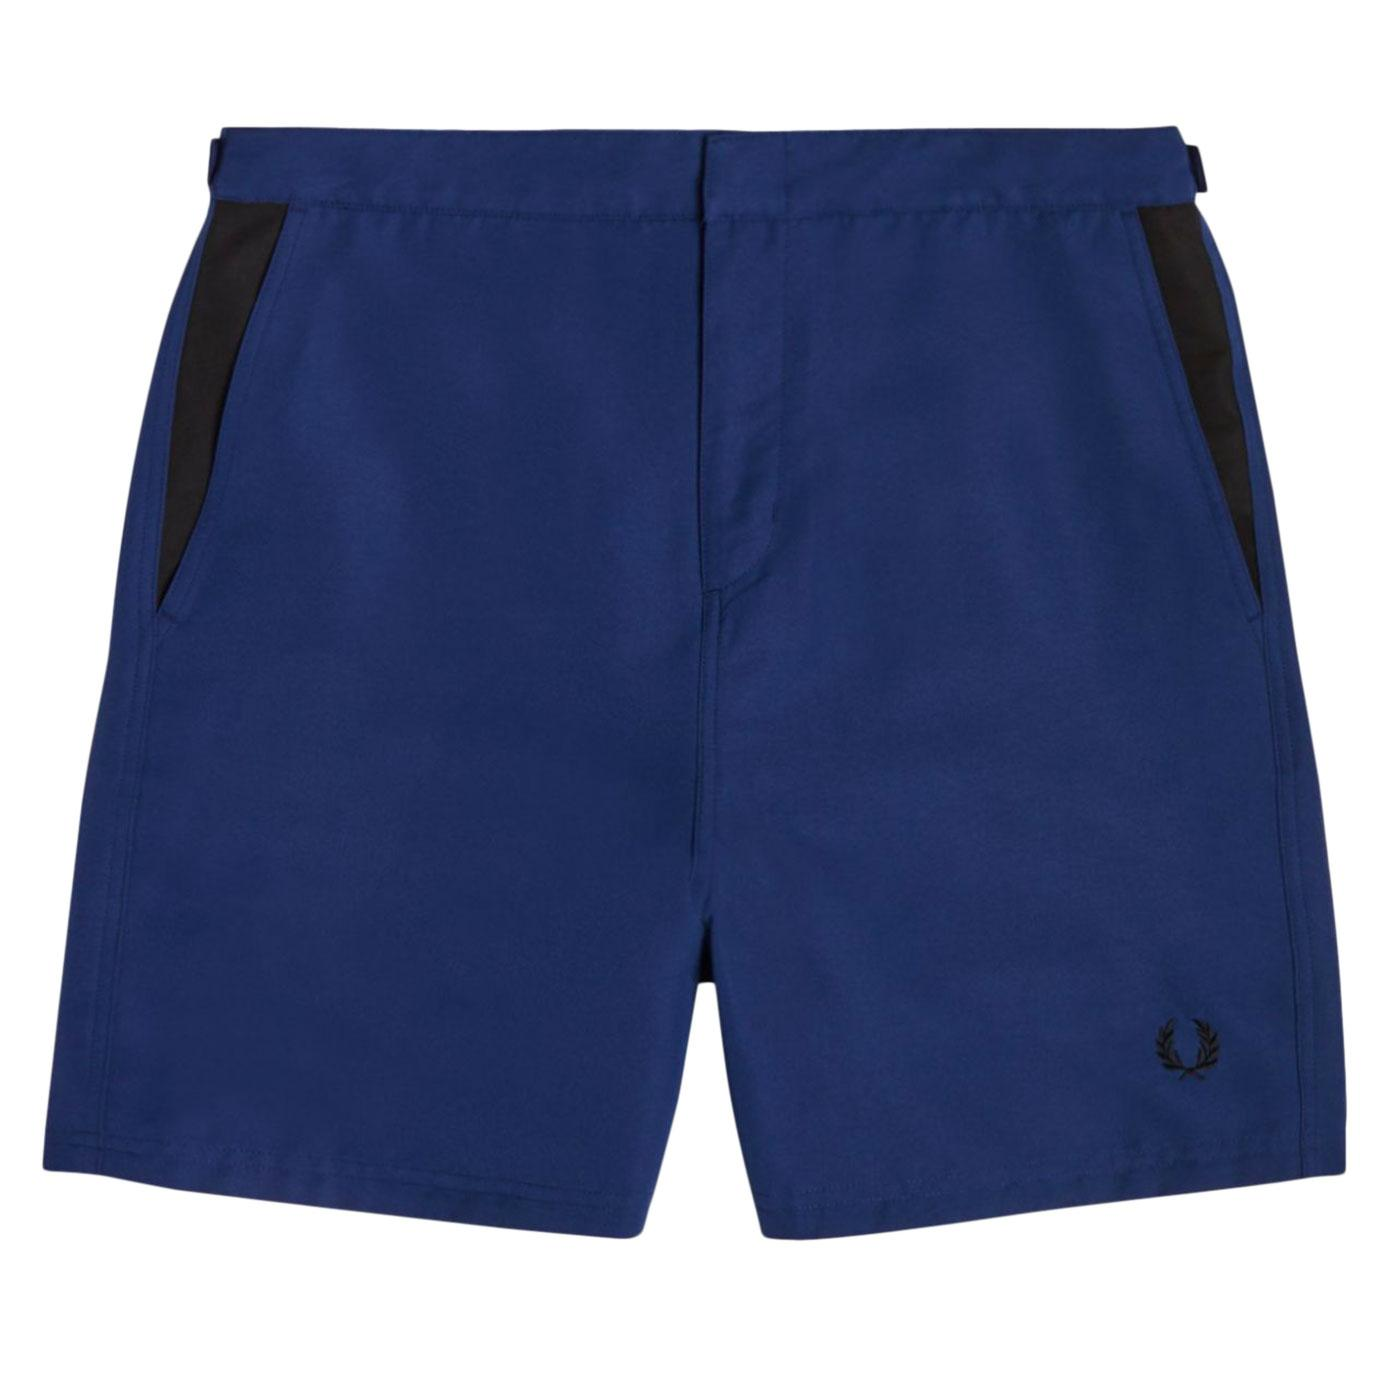 FRED PERRY Retro Contrast Panel Swim Shorts (FN)